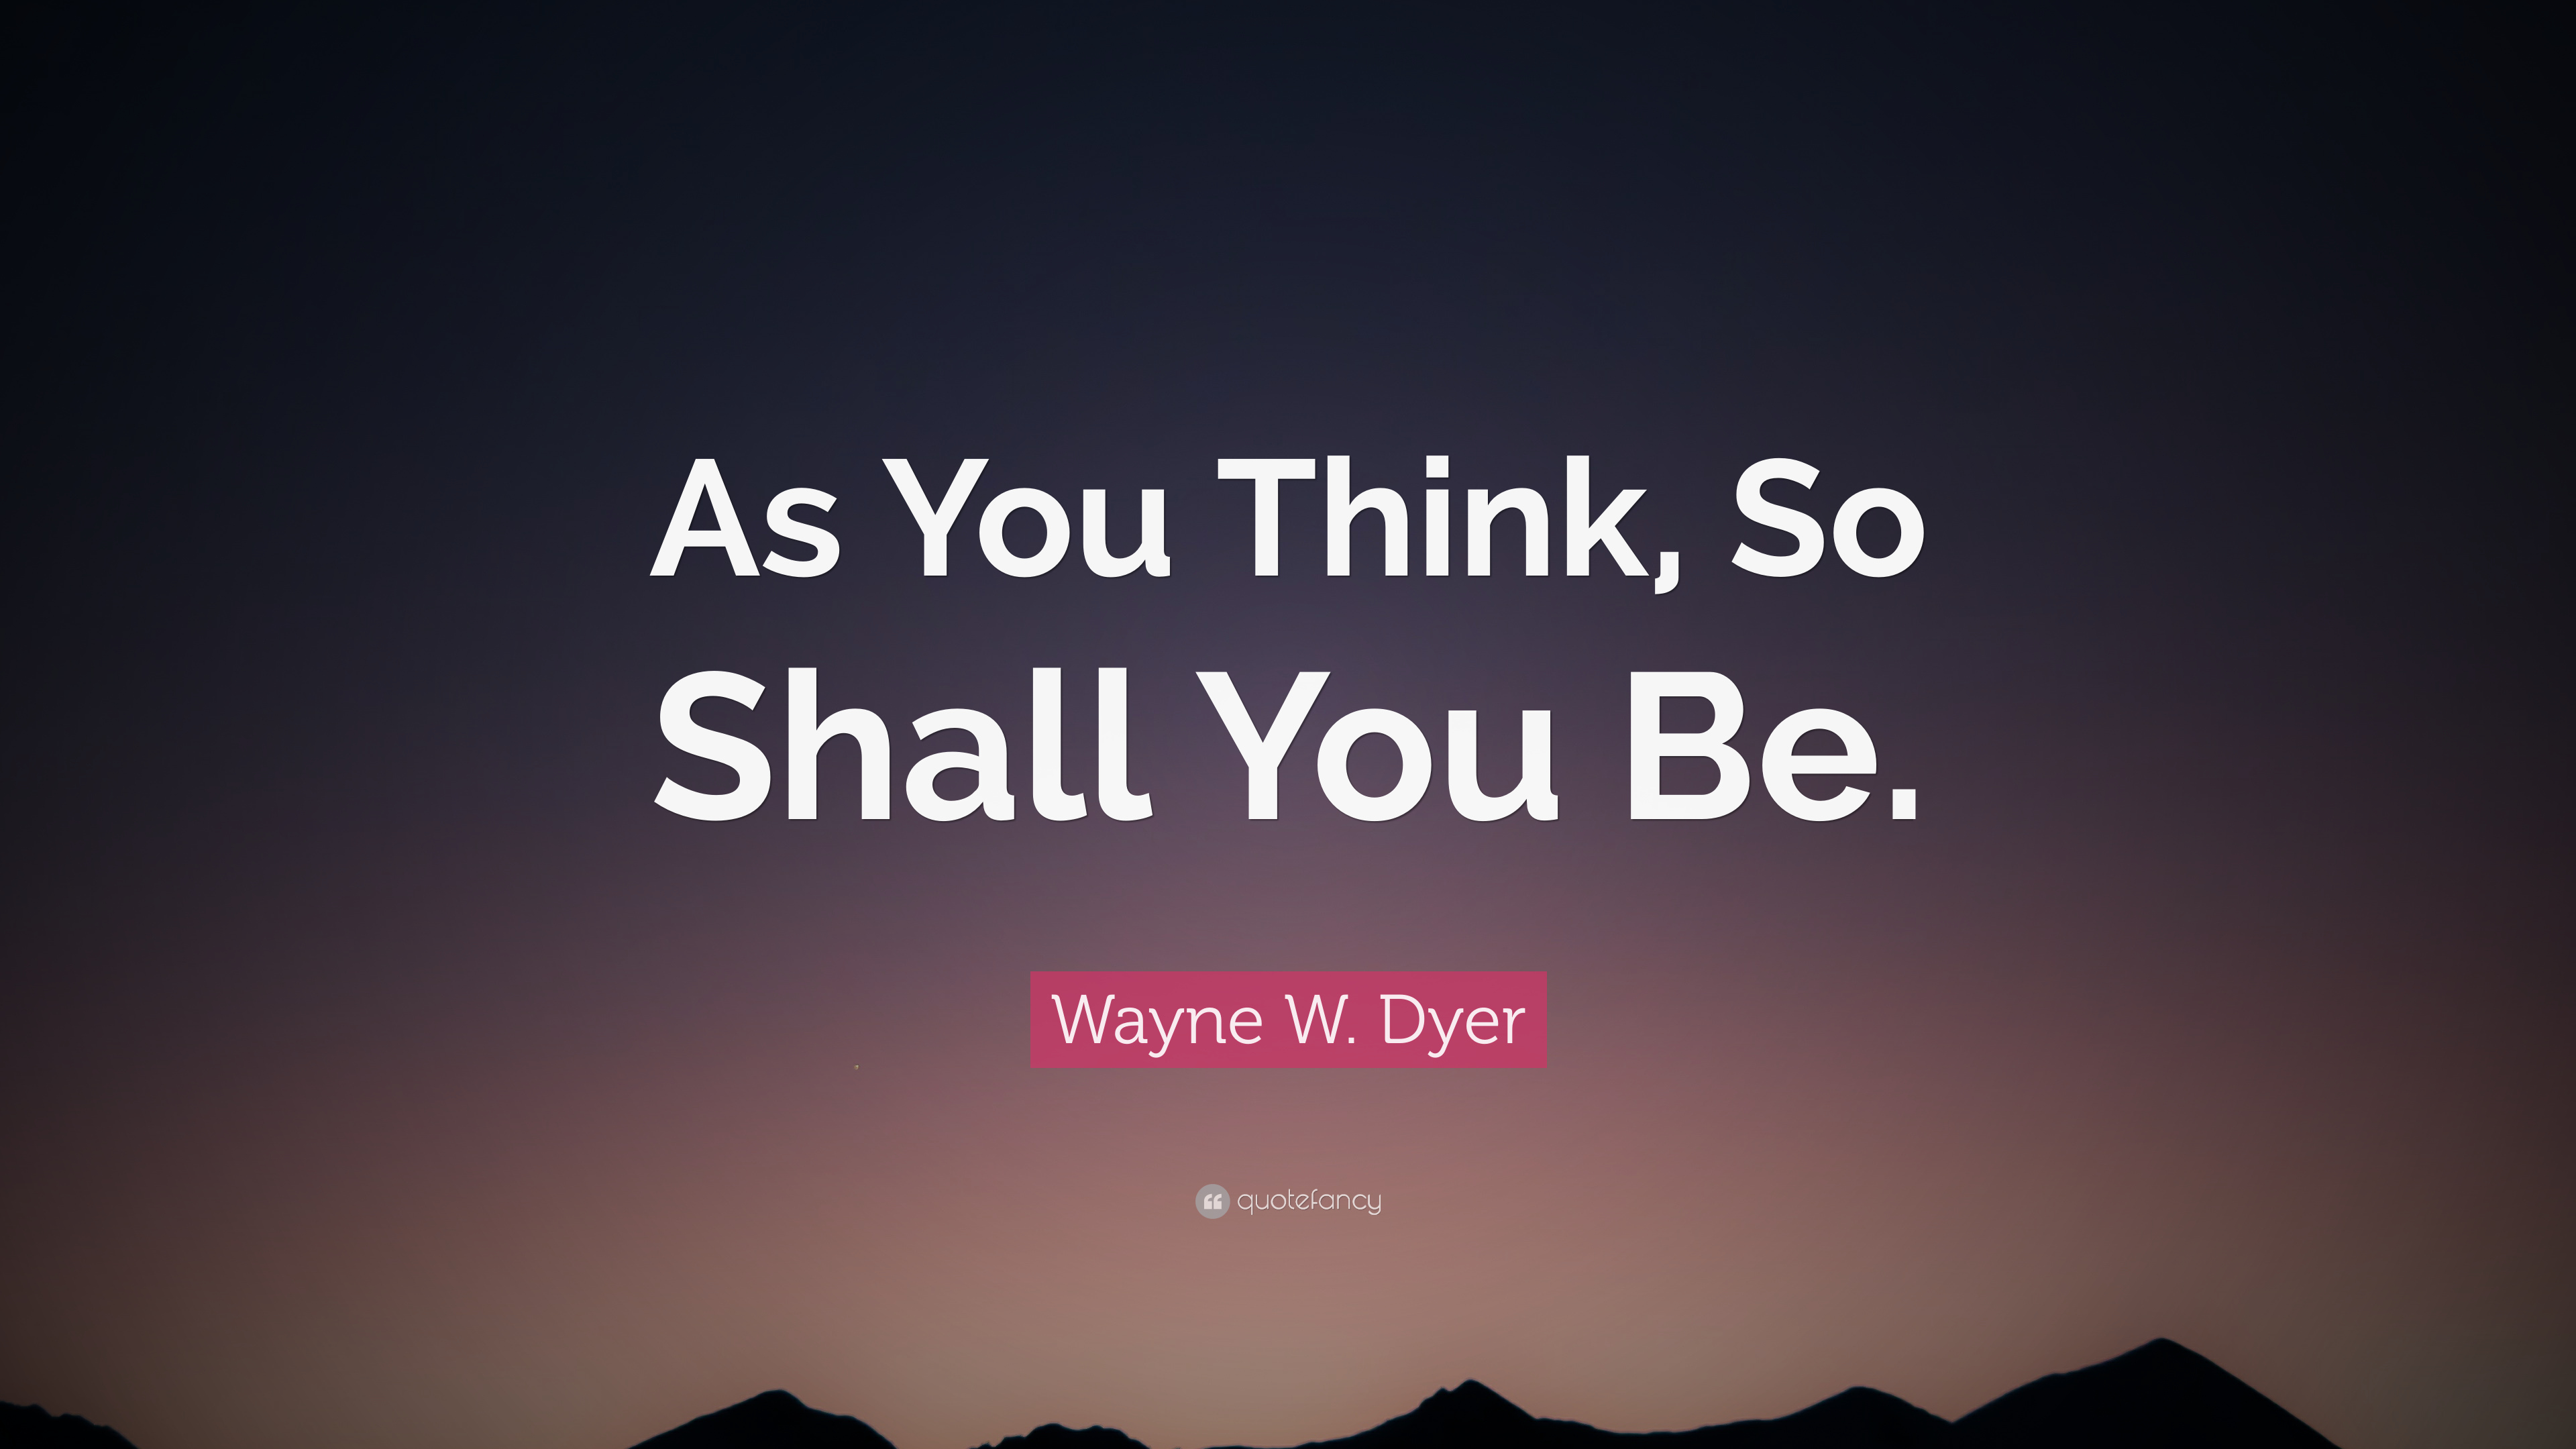 Wayne W Dyer Quote As You Think So Shall You Be 12